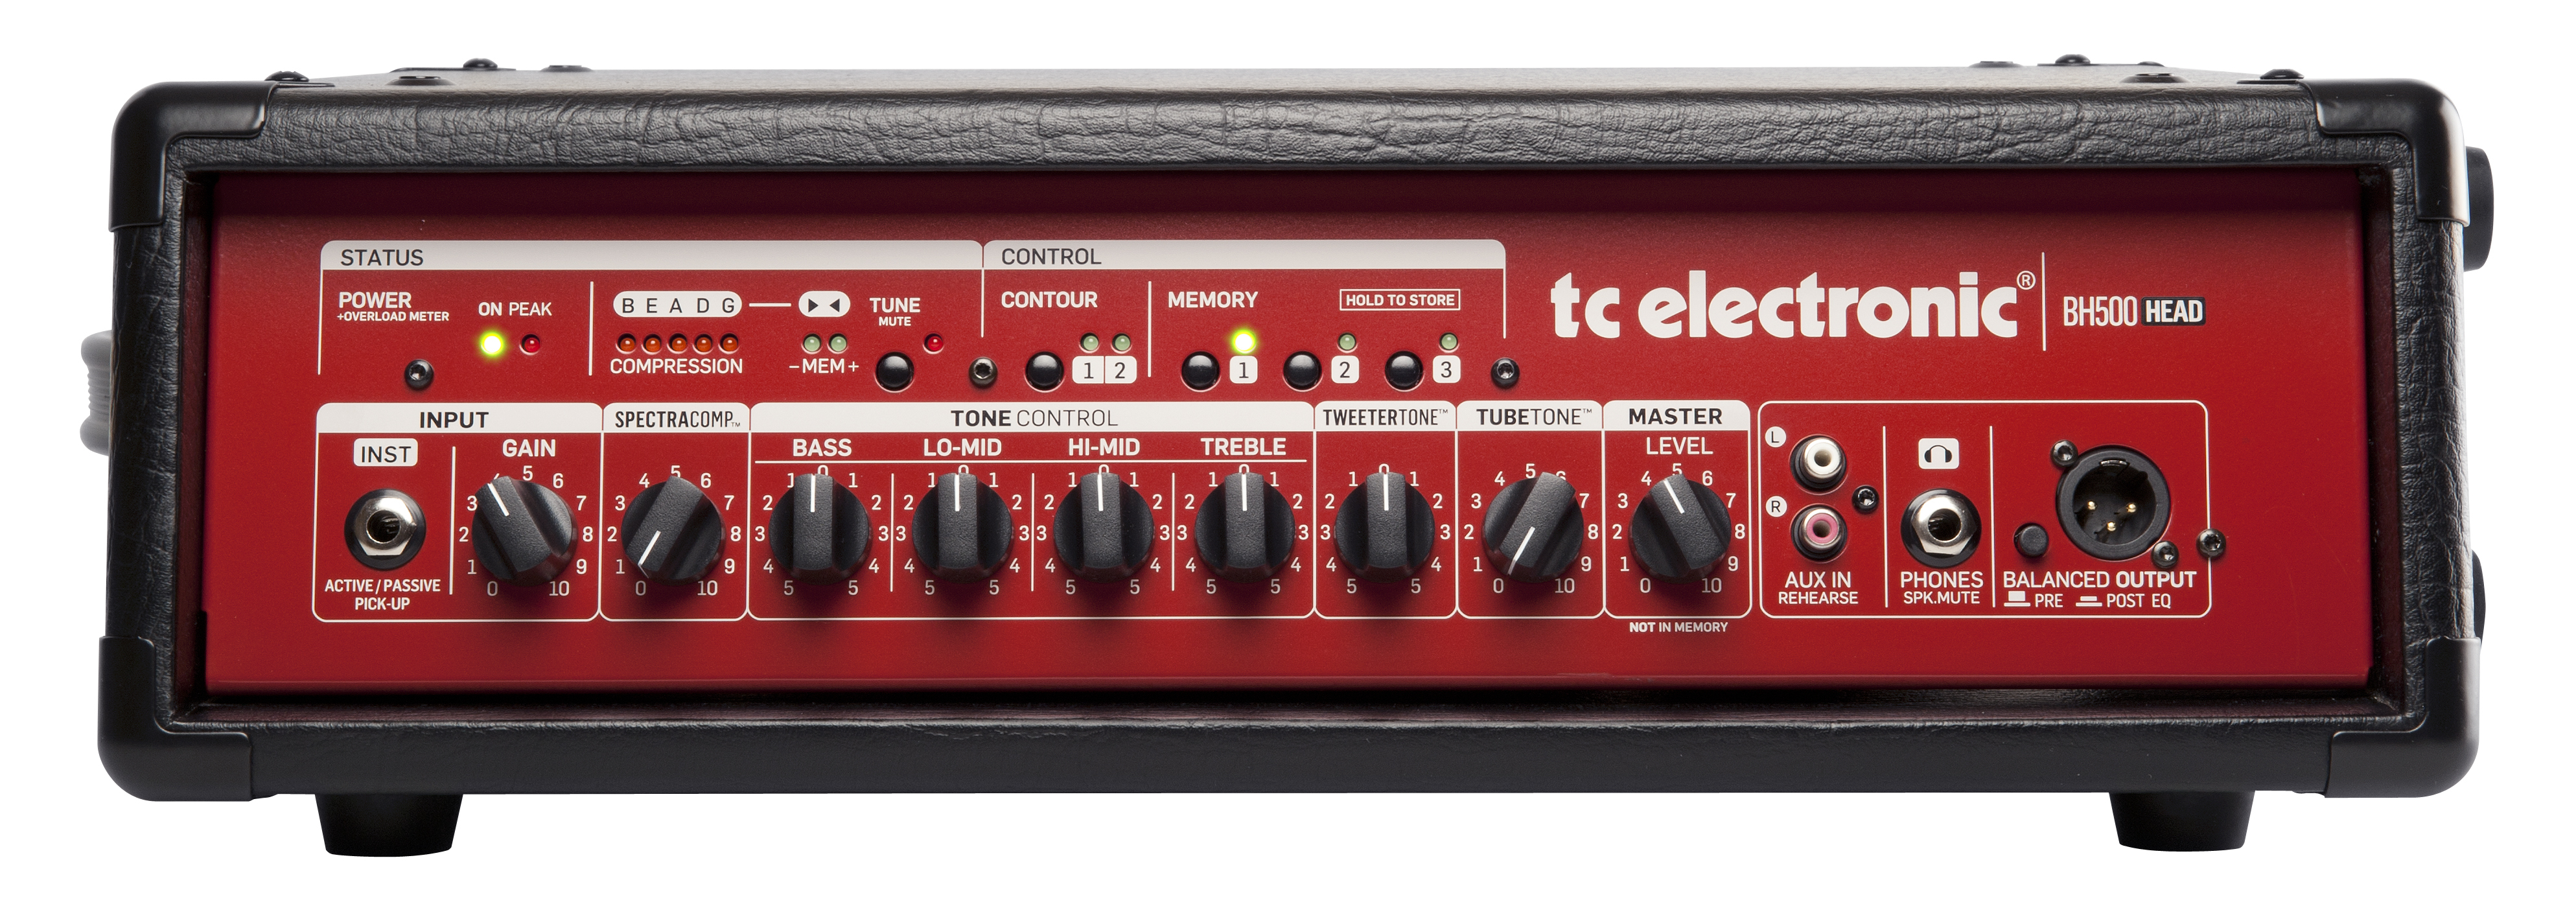 Tc Electronic Bh500 And Bc210 Review Red Peril In Denmark Accurate Bass Tone Control